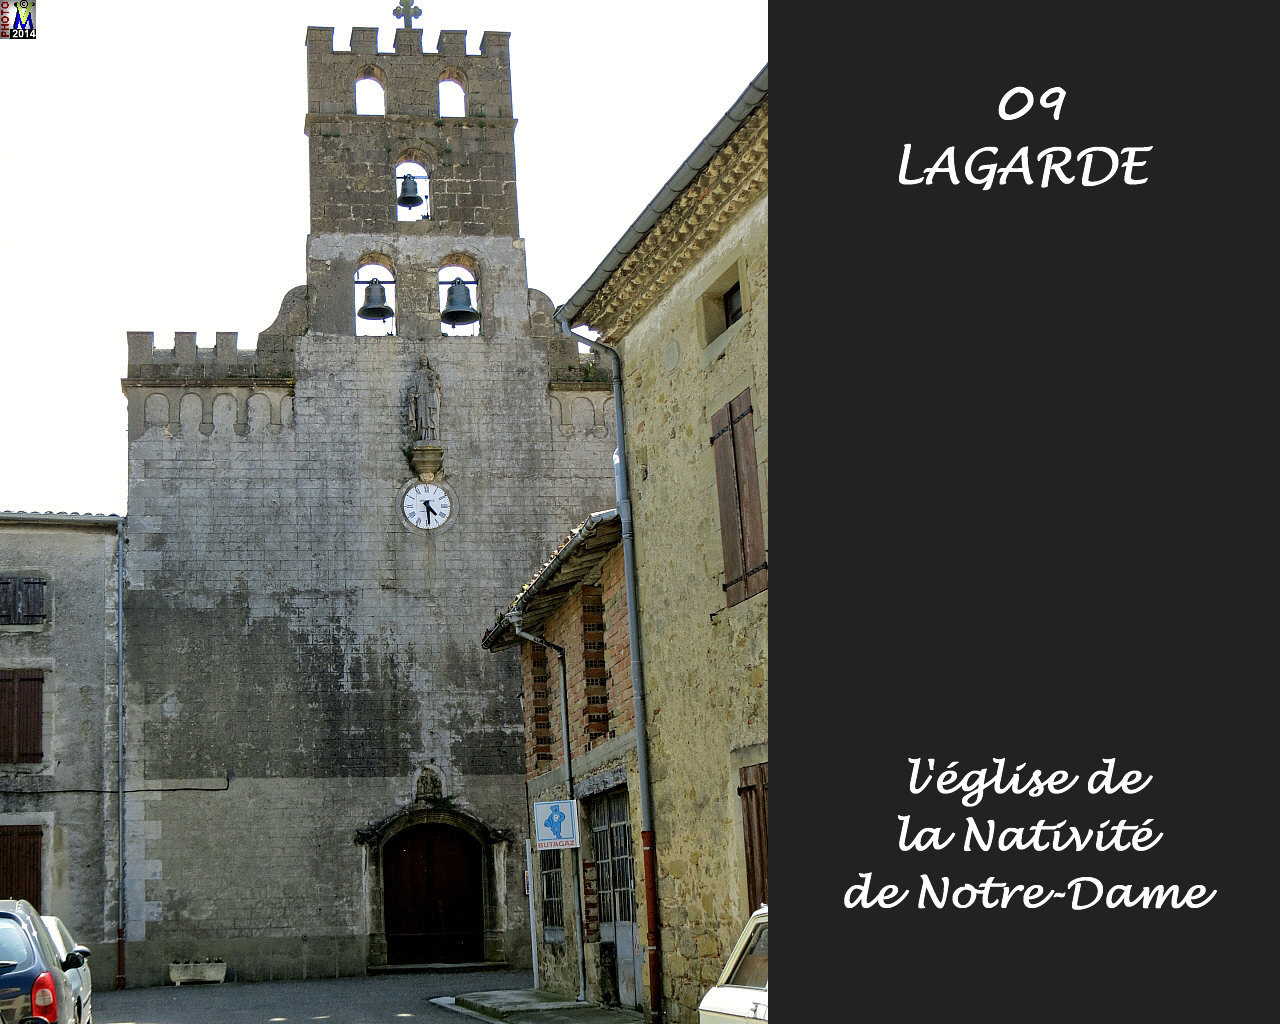 09LAGARDE_eglise_104.jpg